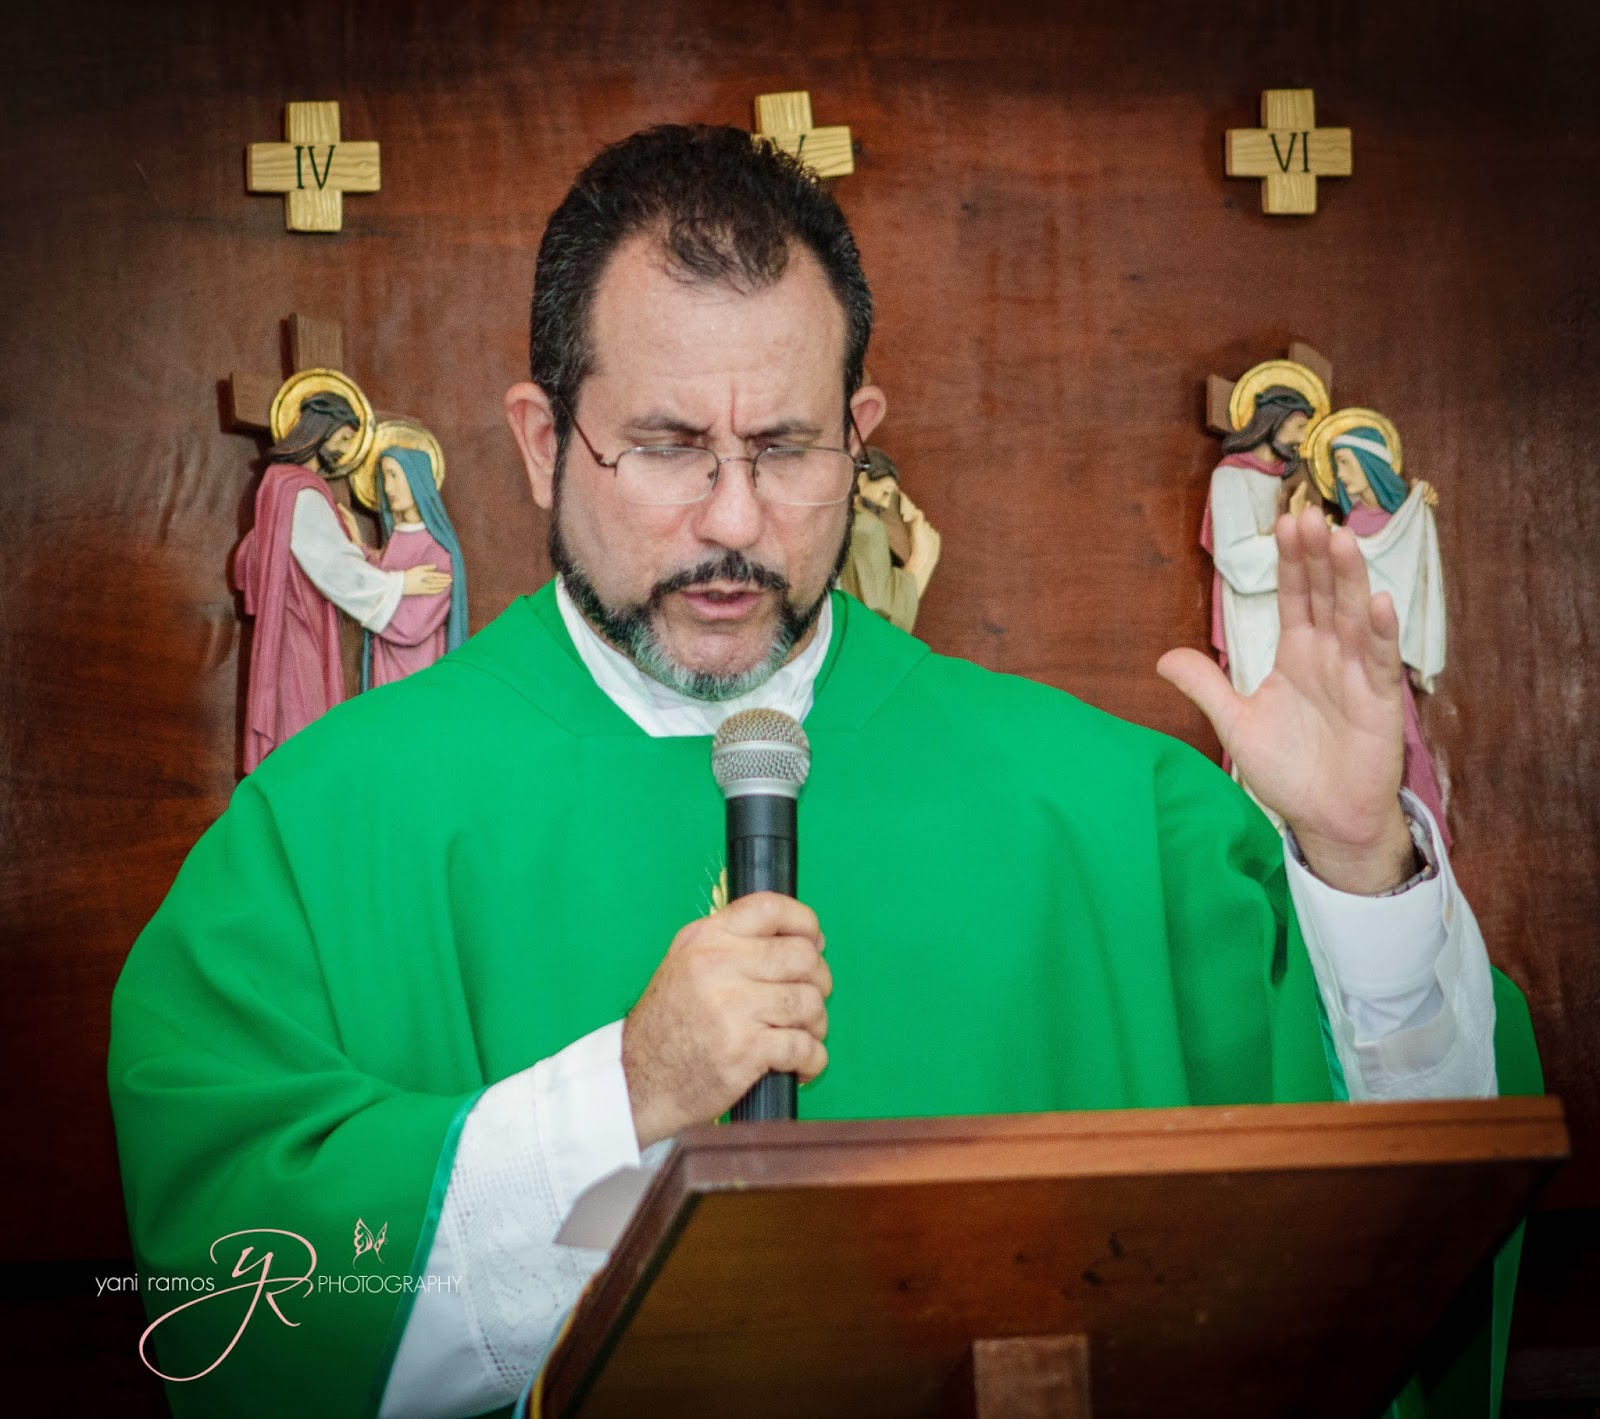 25th Anniversary of Priesthood - Fr. Jose Quintero